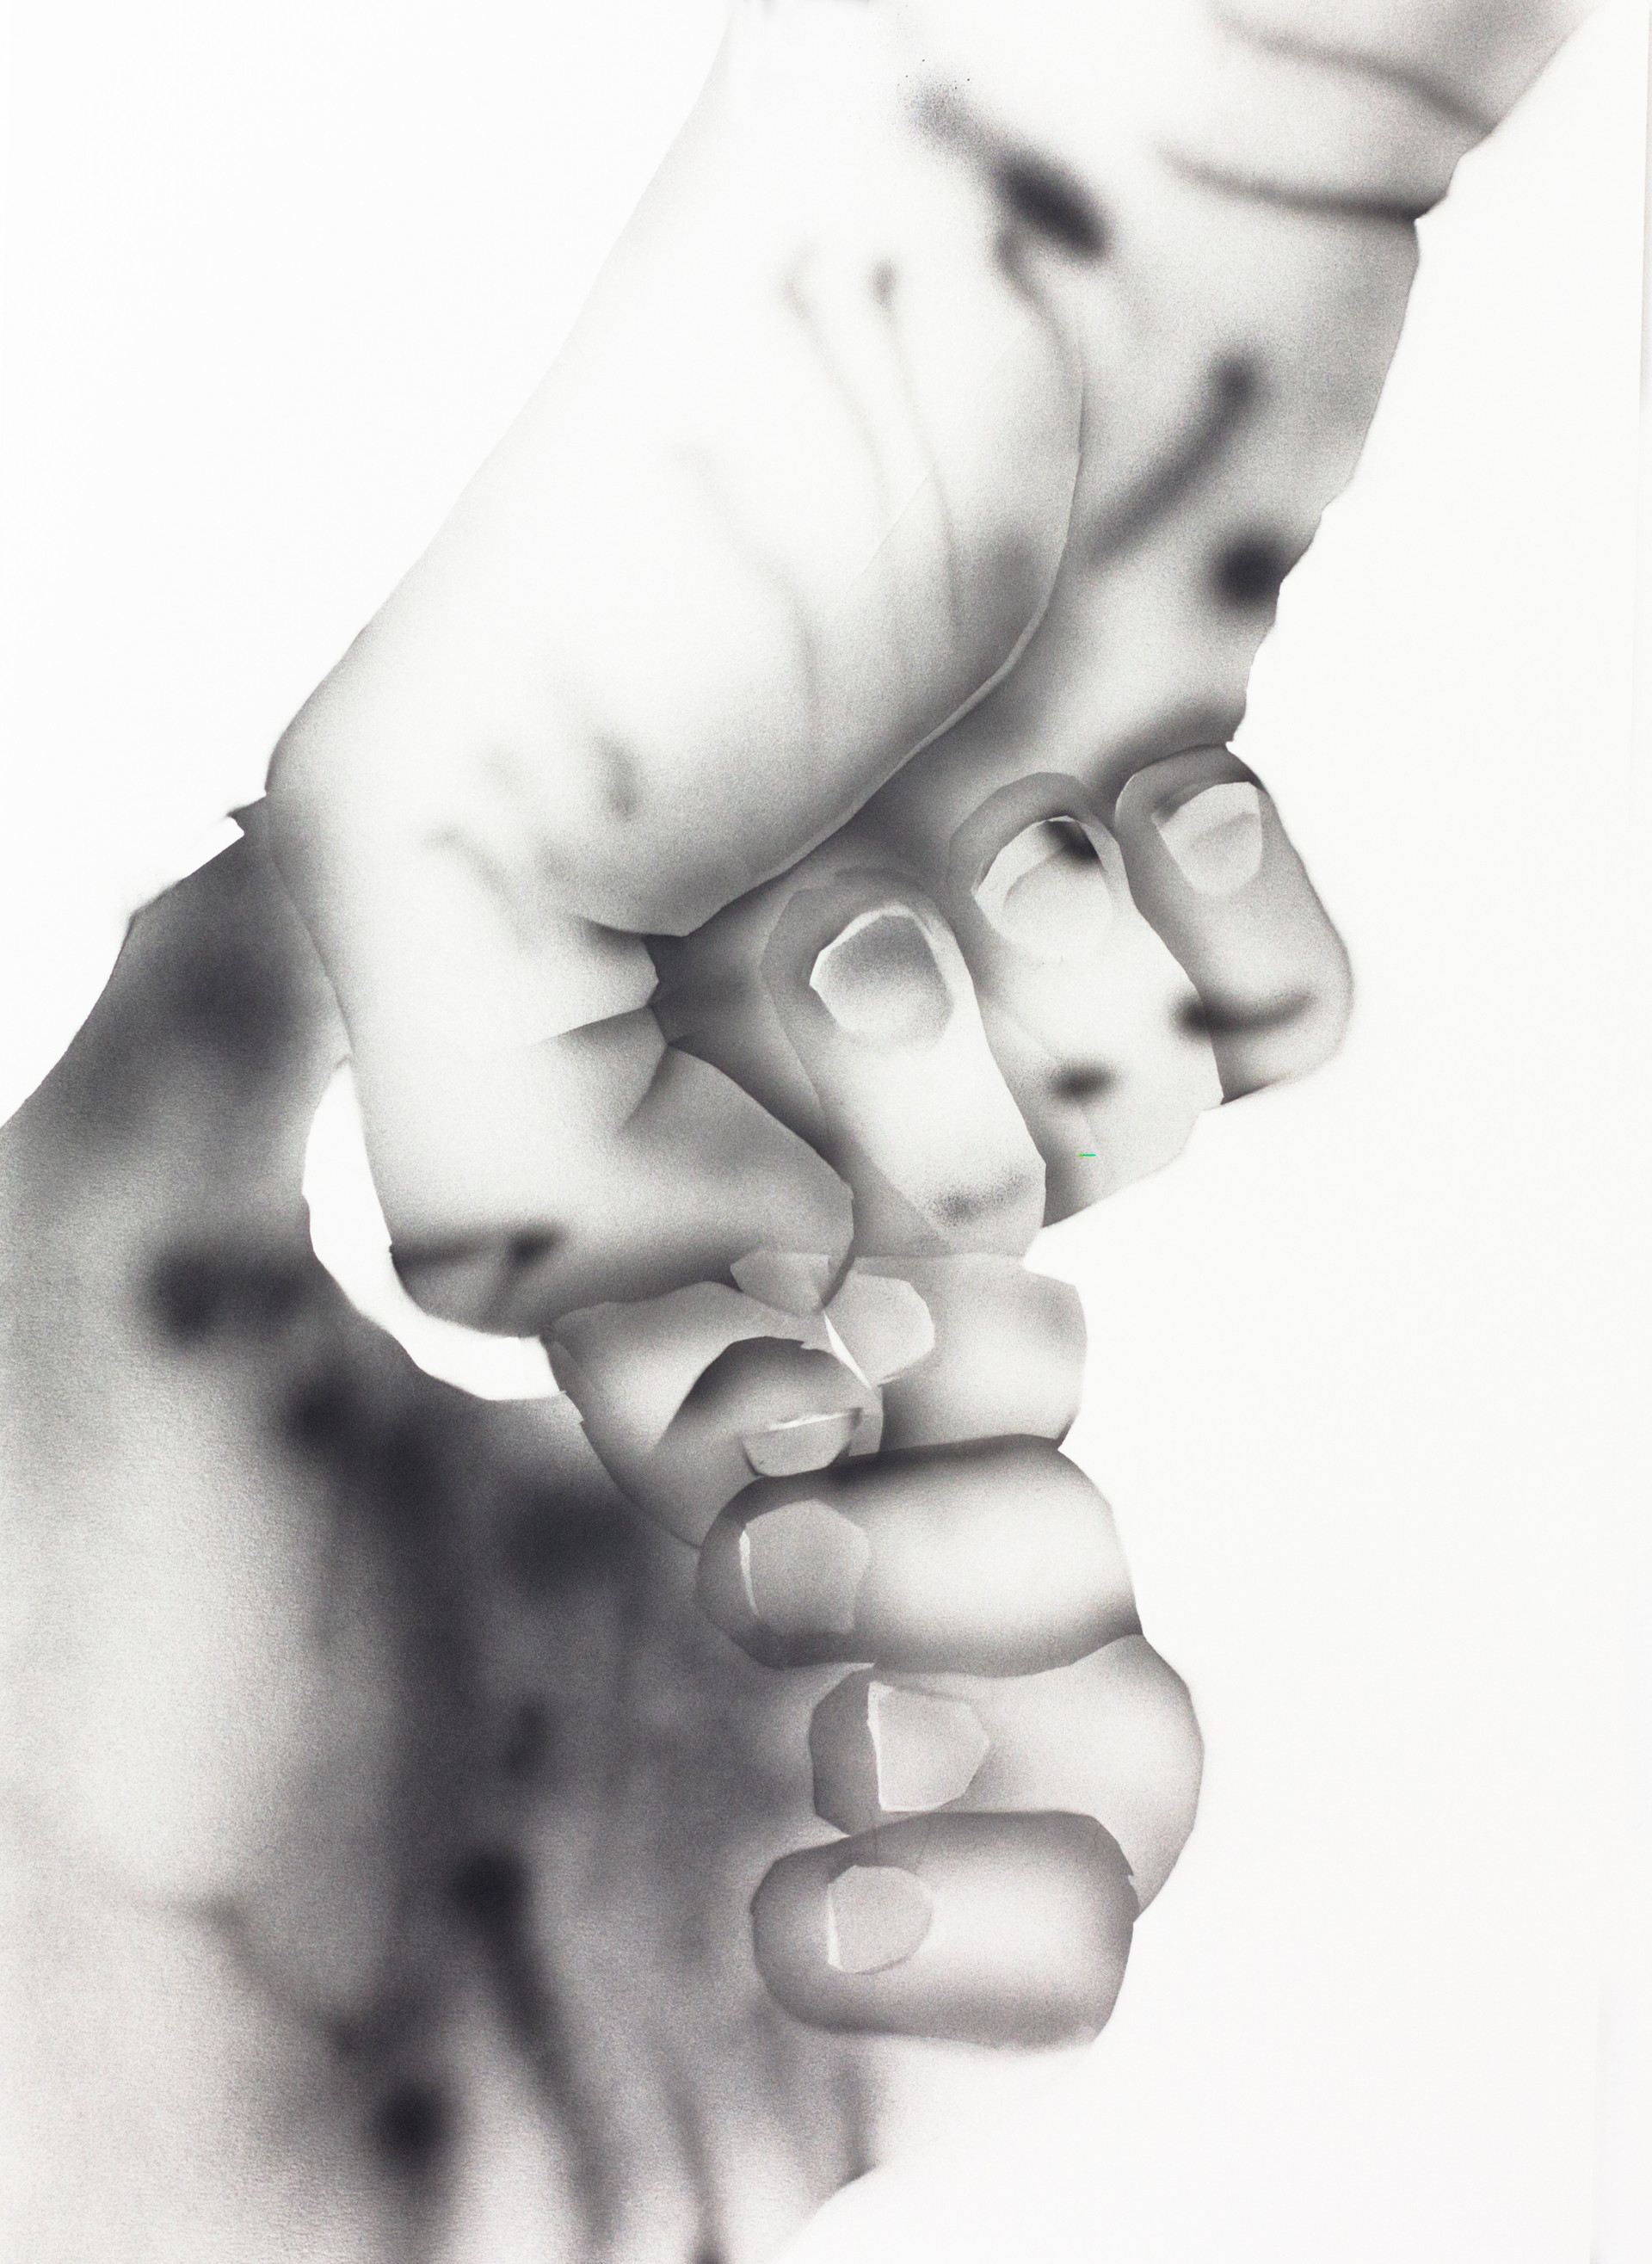 Yoav Weinfeld, Hands, Ink on paper, 60x4